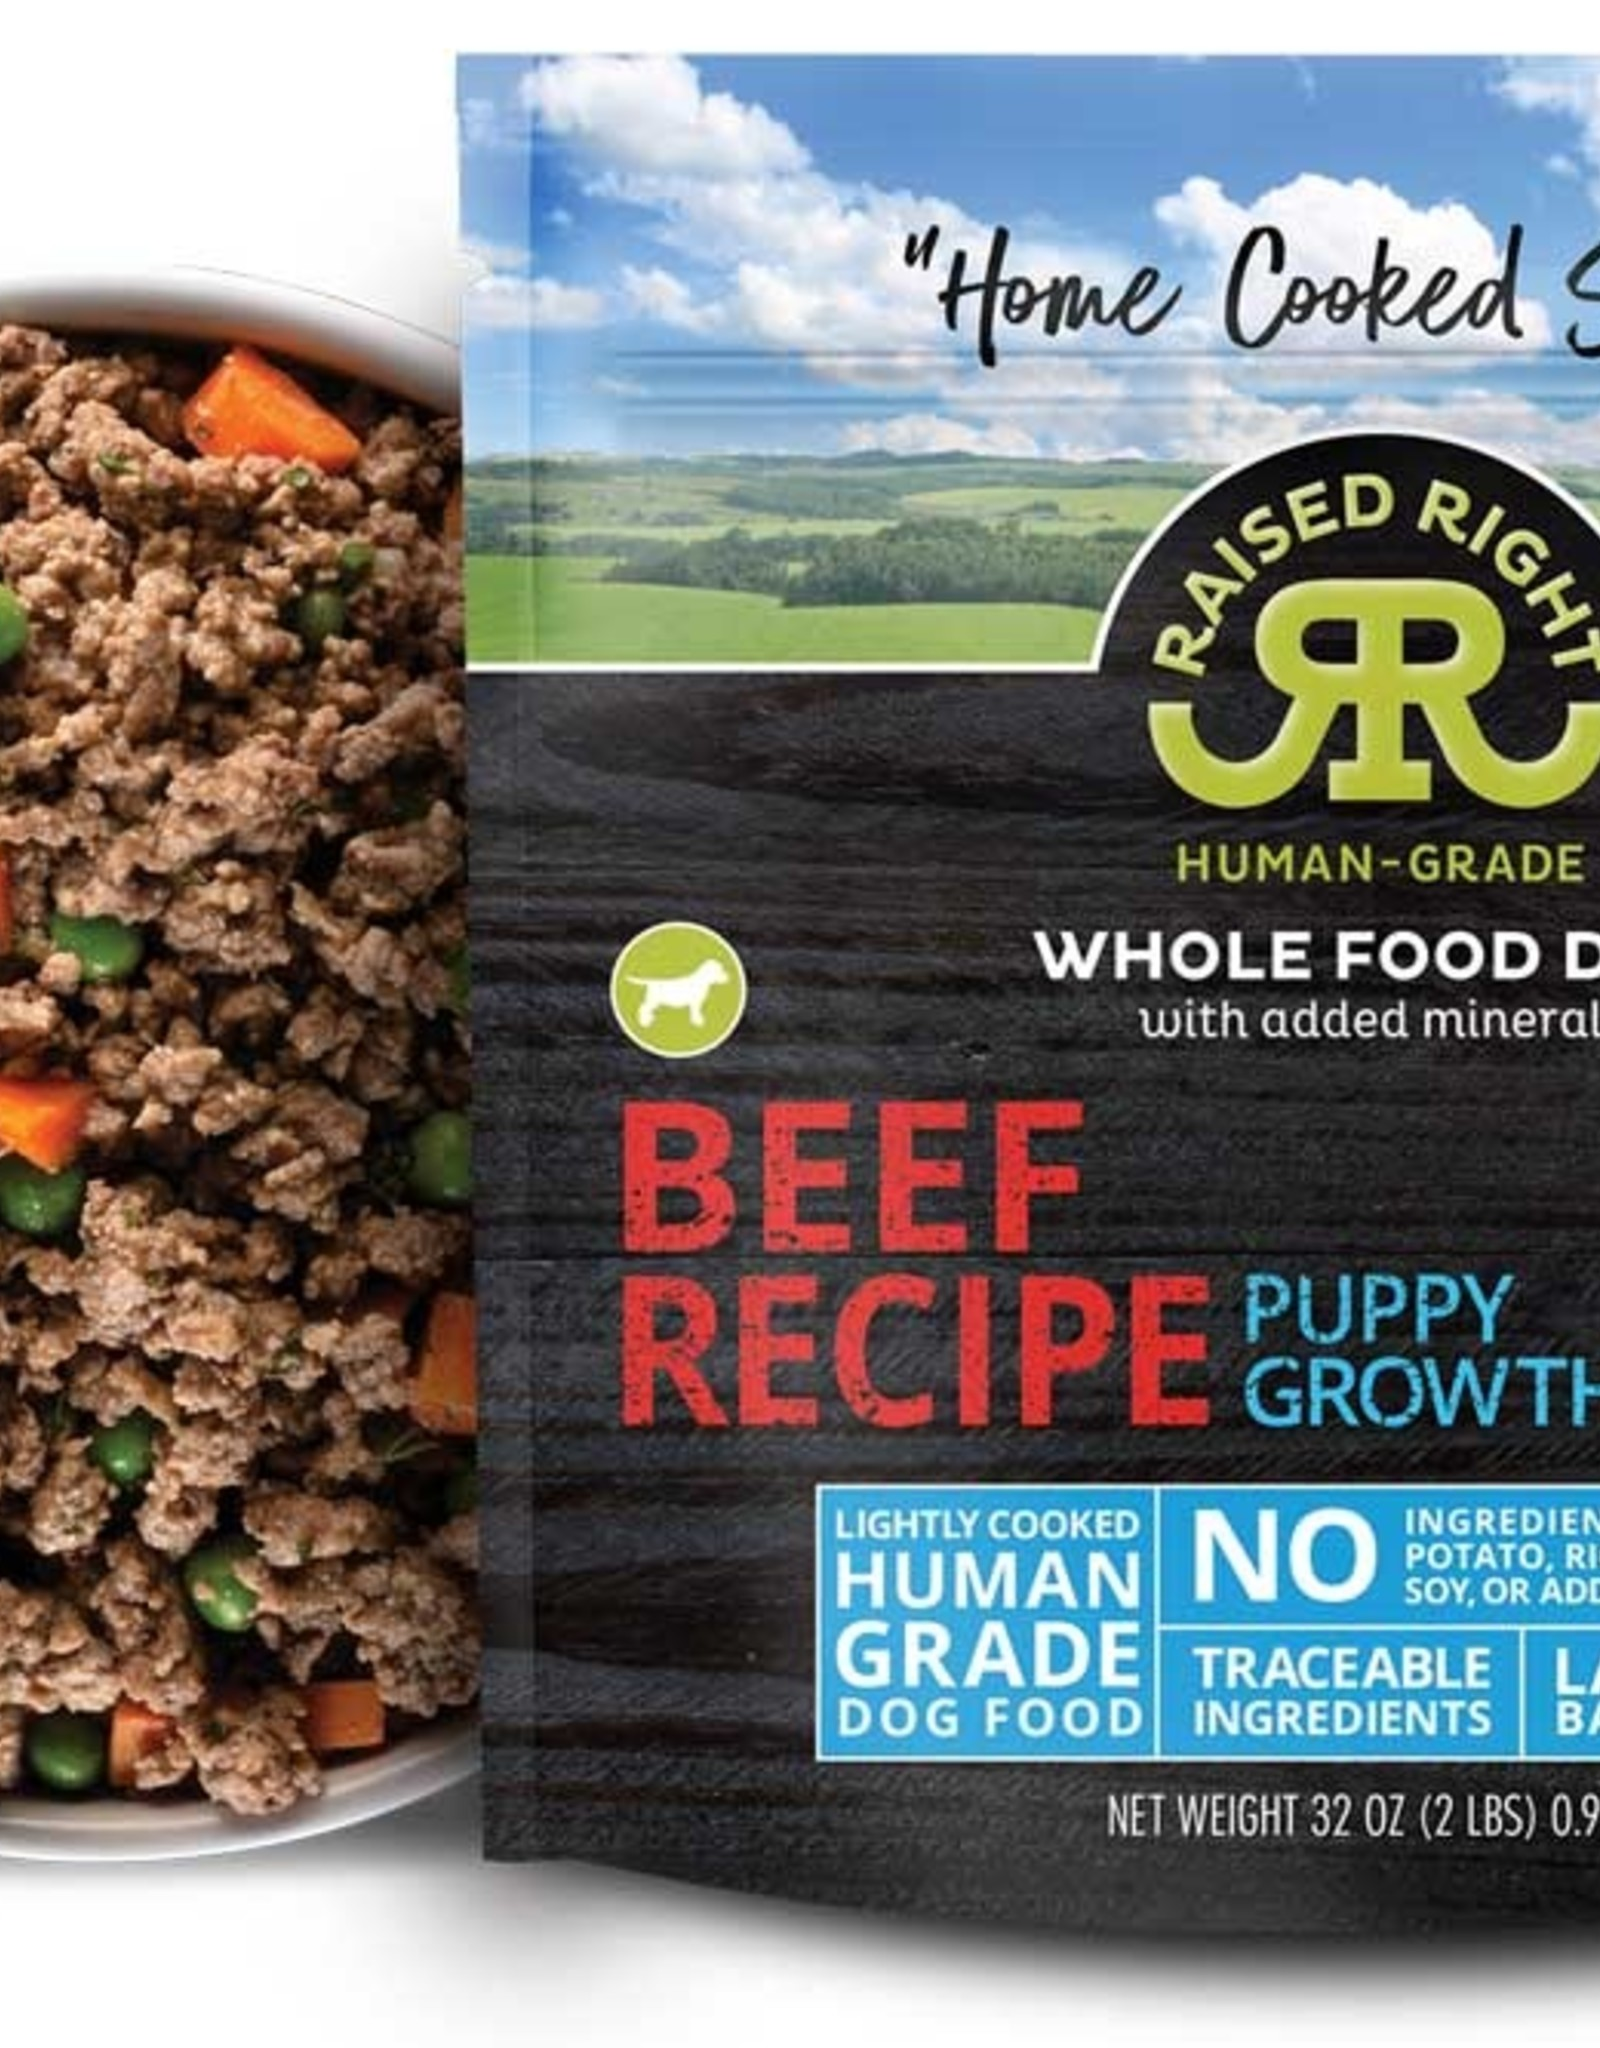 SALE - Raised Right Beef Puppy Growth Recipe